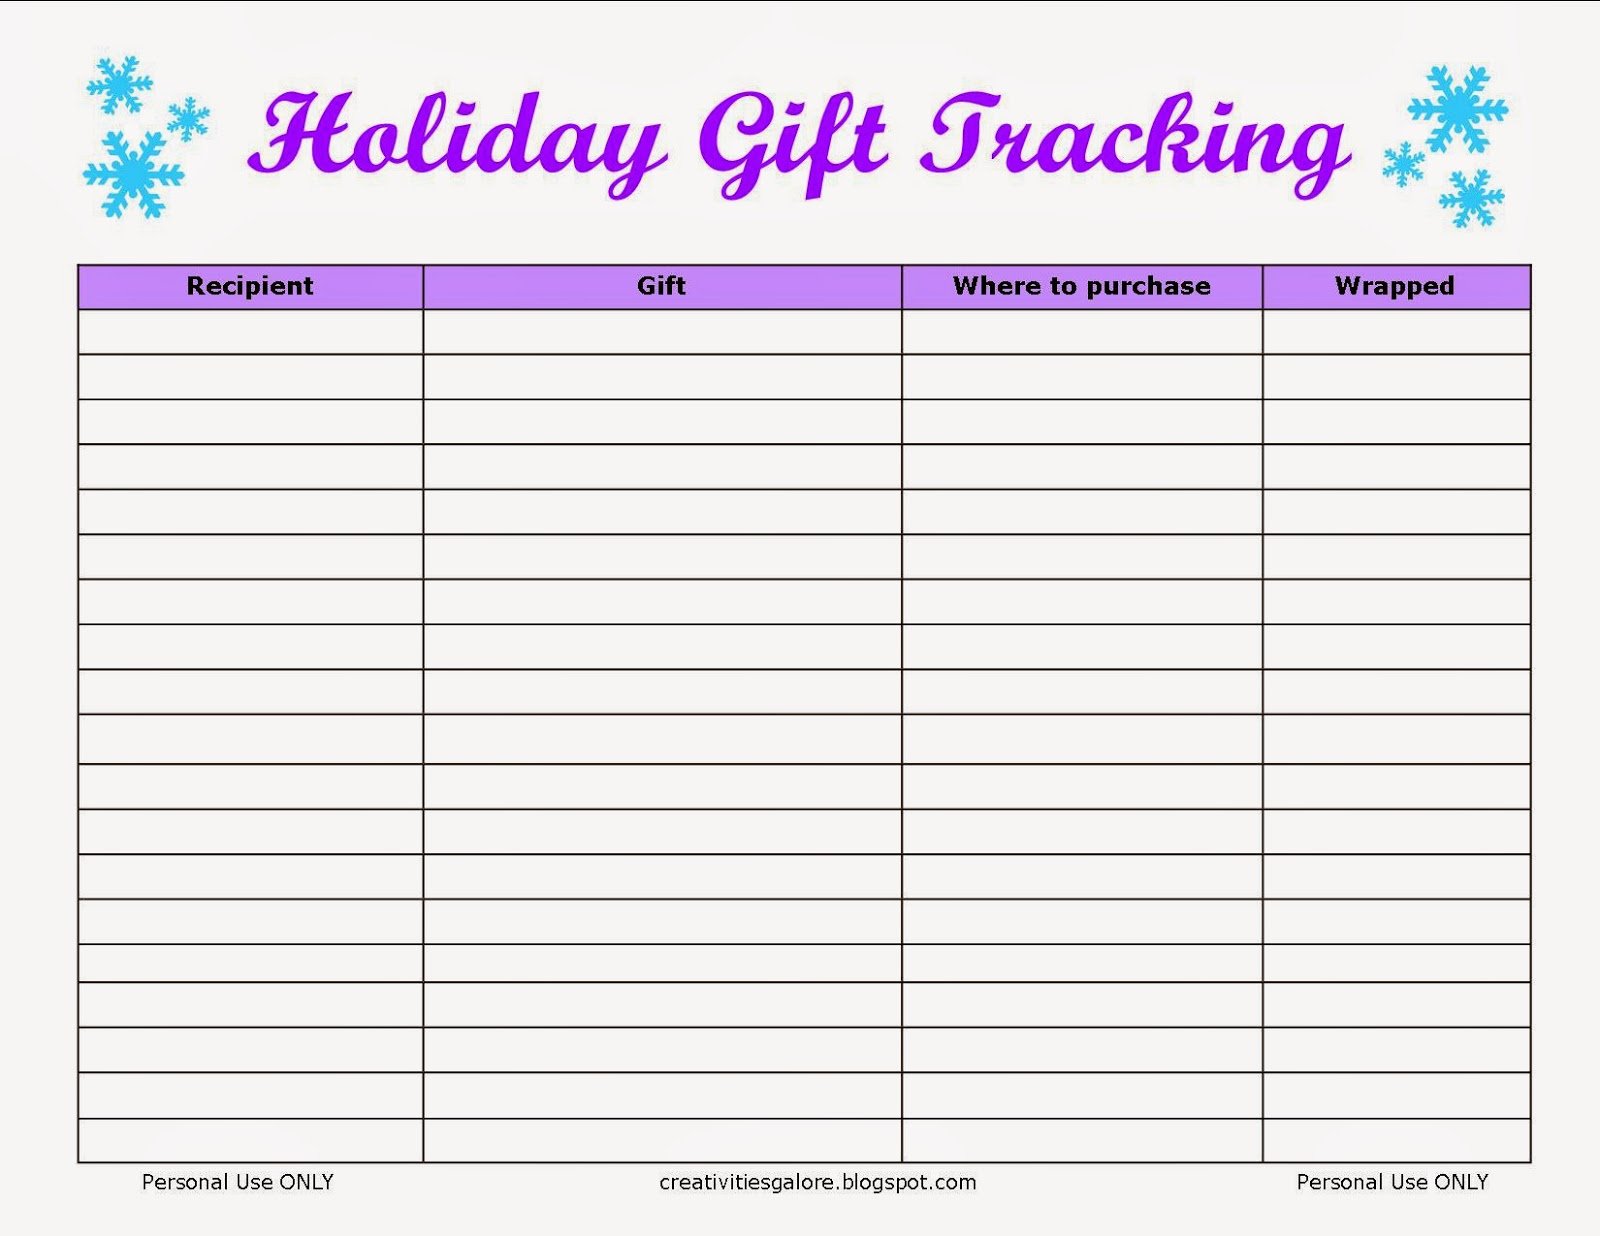 Wedding Gift List Holiday : Creativities Galore: FREE Holiday Gift Tracking Sheet